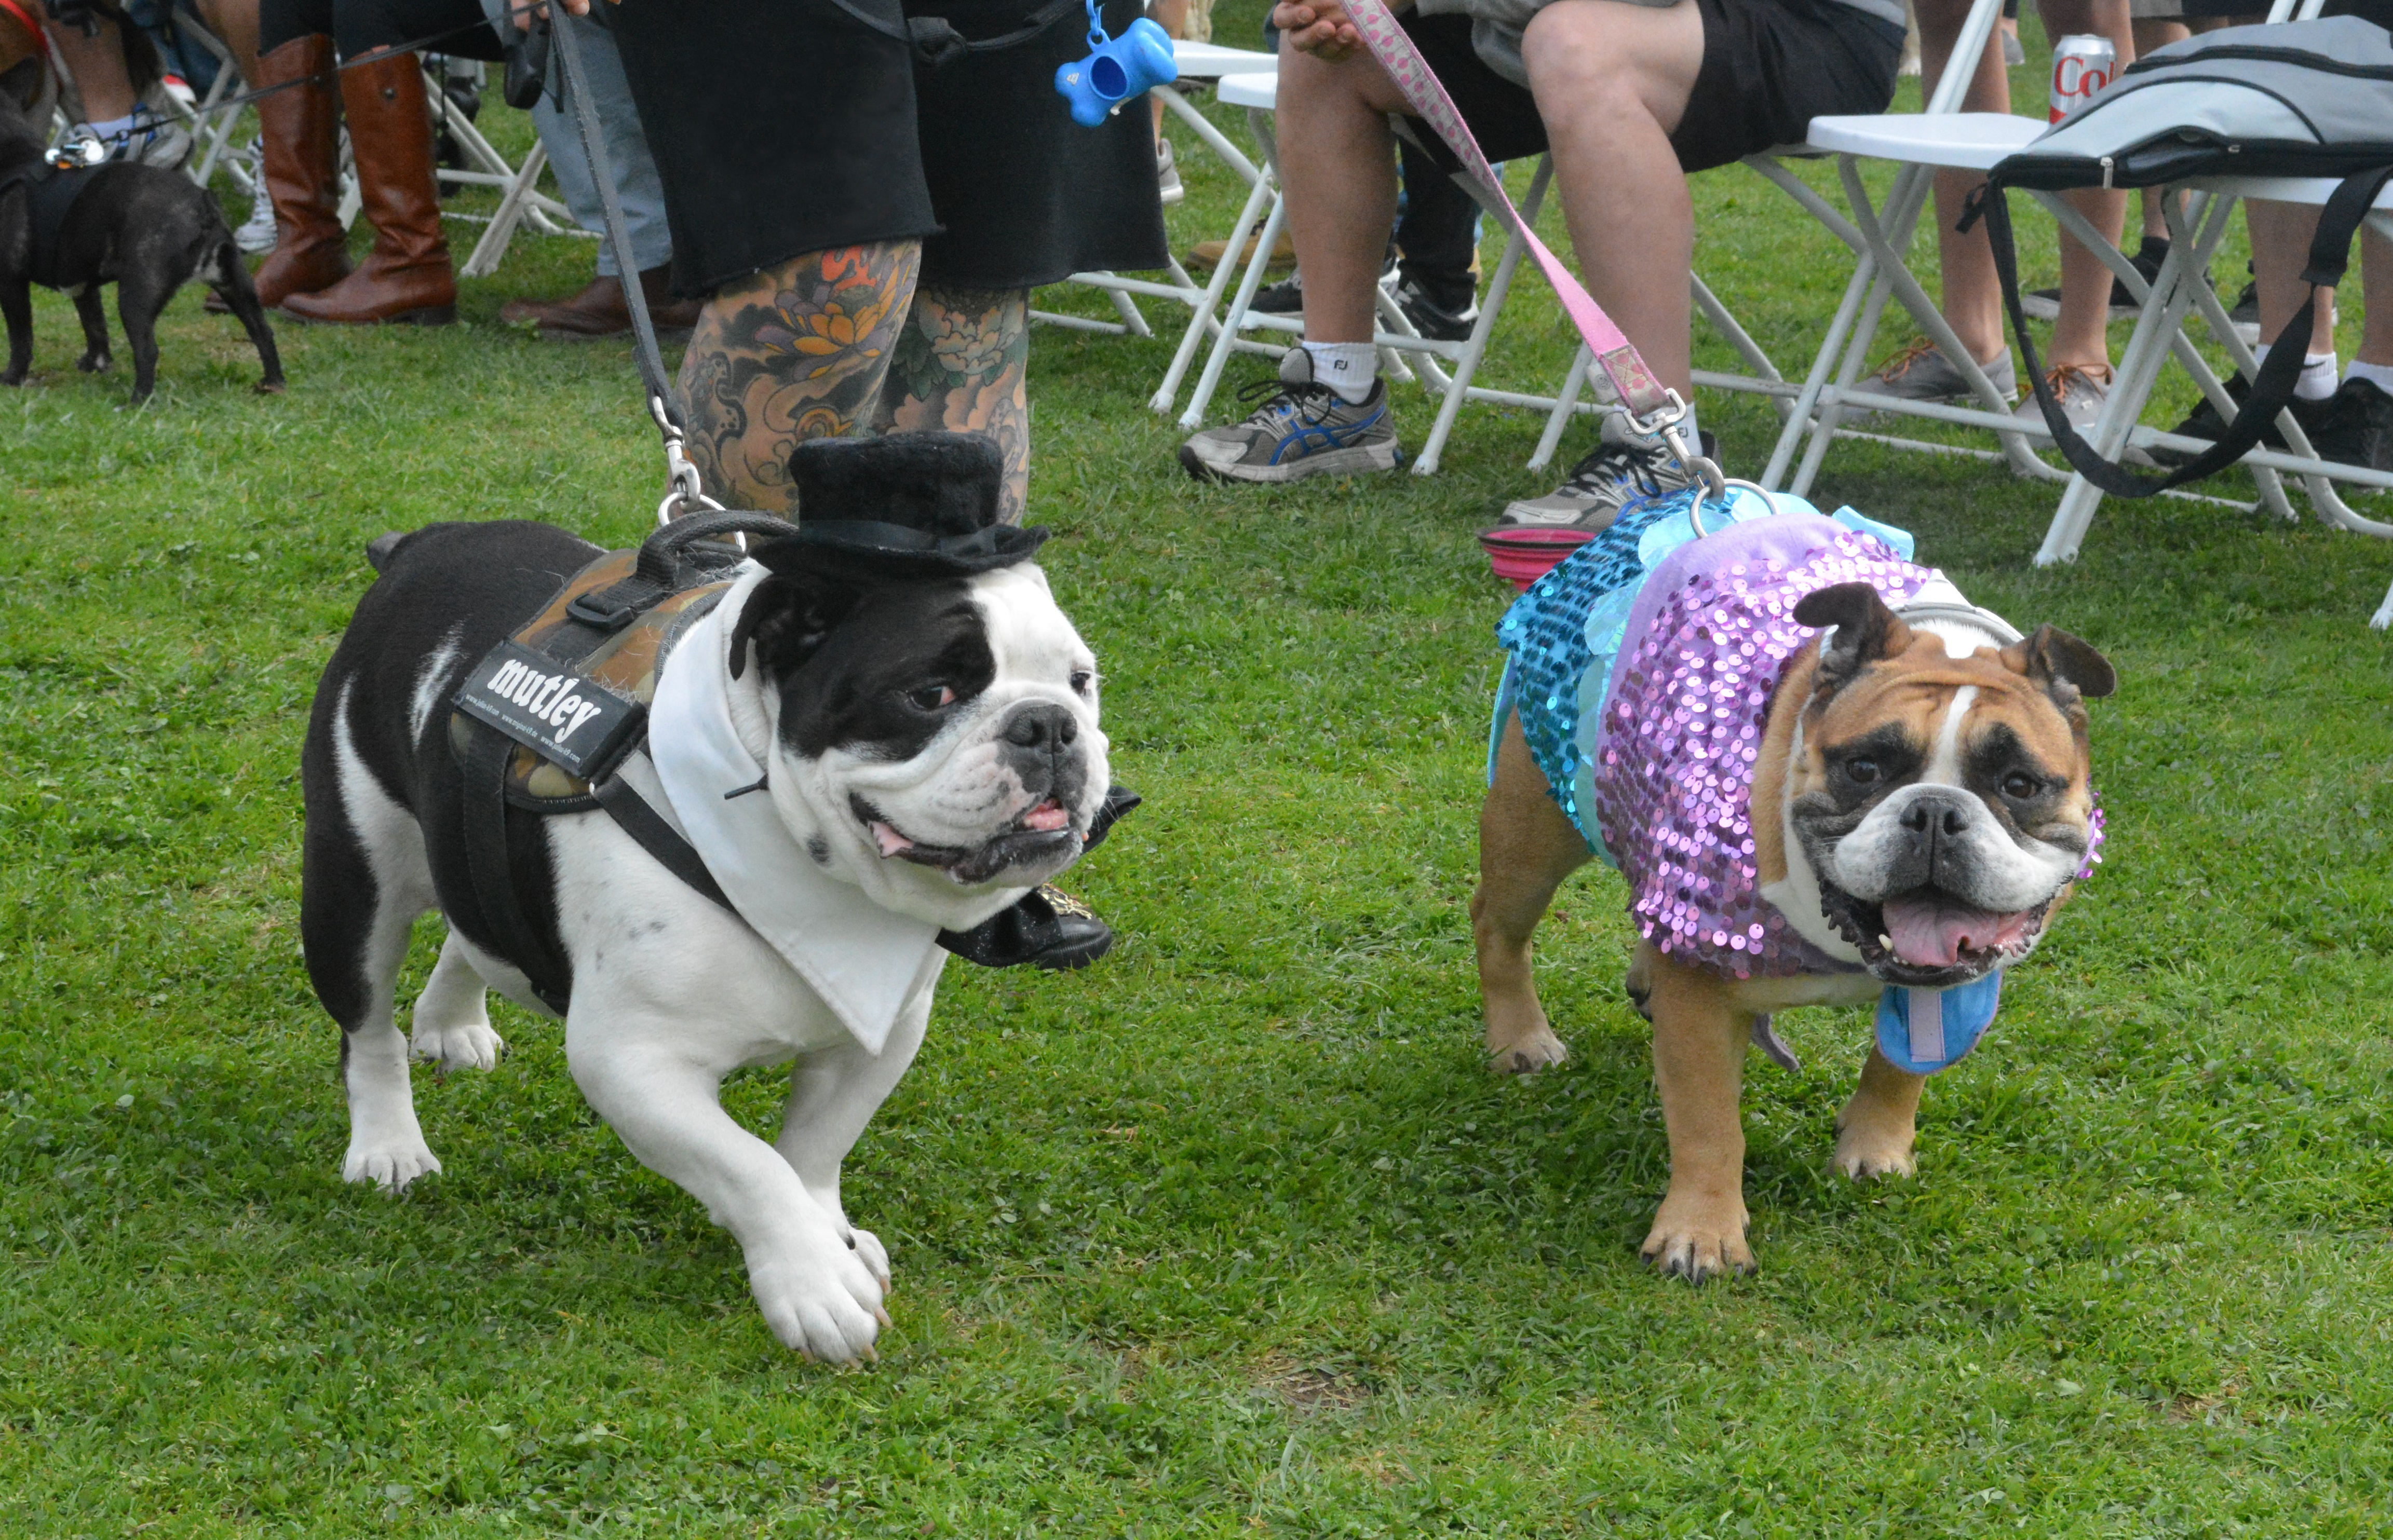 bulldogs dress in a top hat and a spangly costume on leashes, walking on the grass